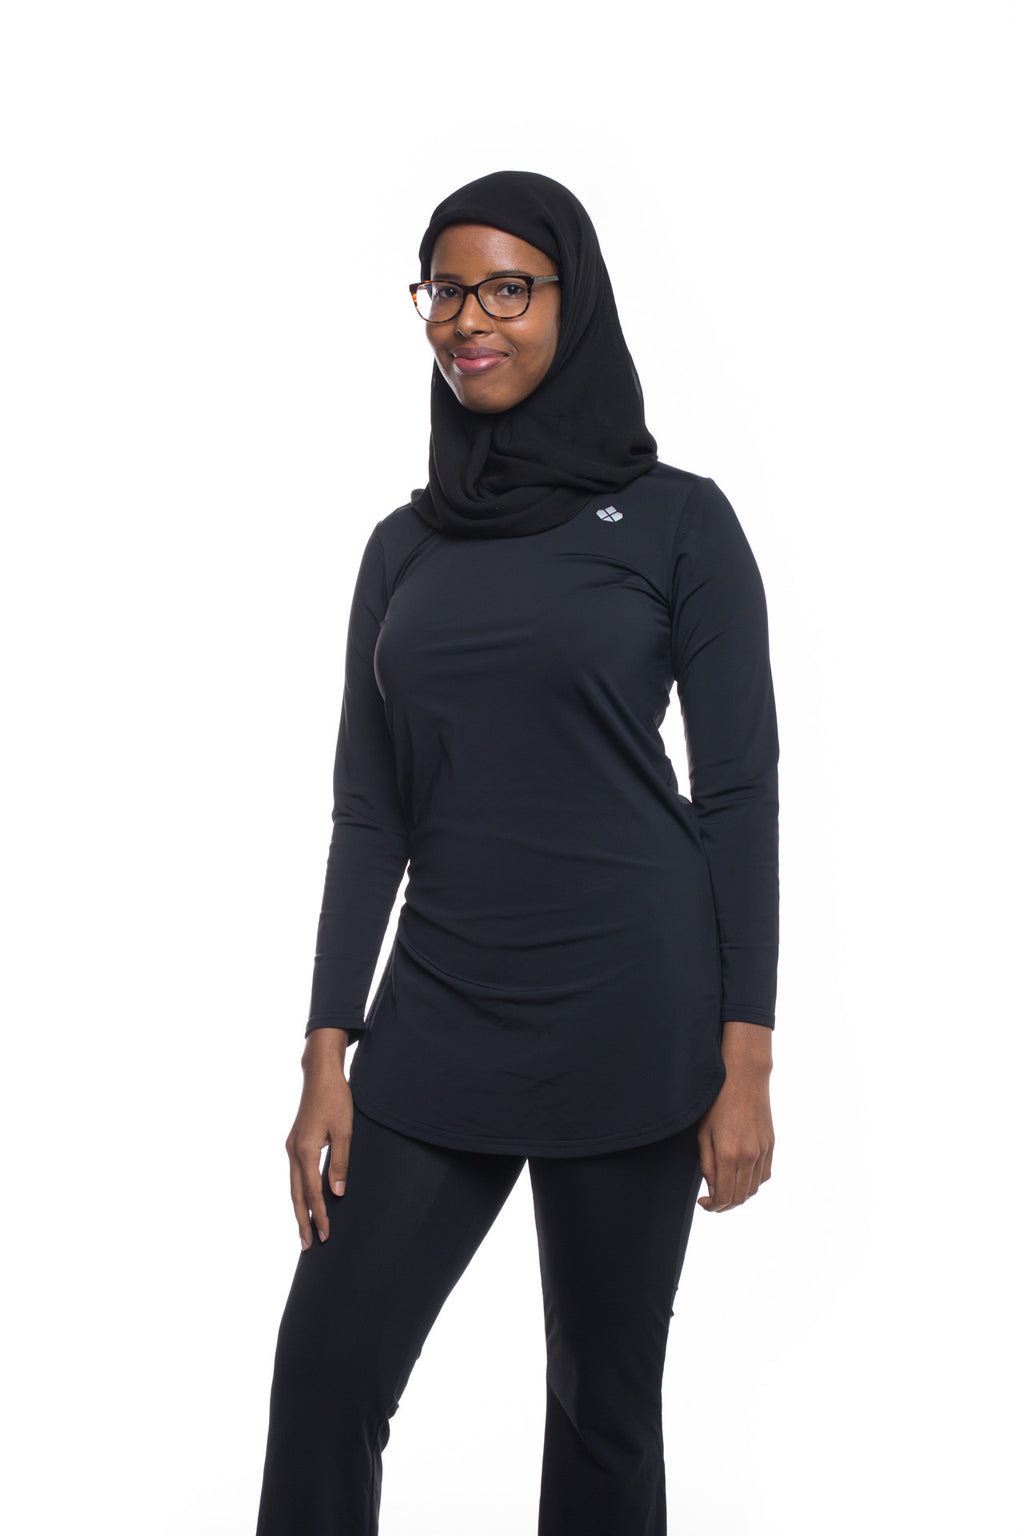 Aurora Long-Sleeve Recycled Top- Black